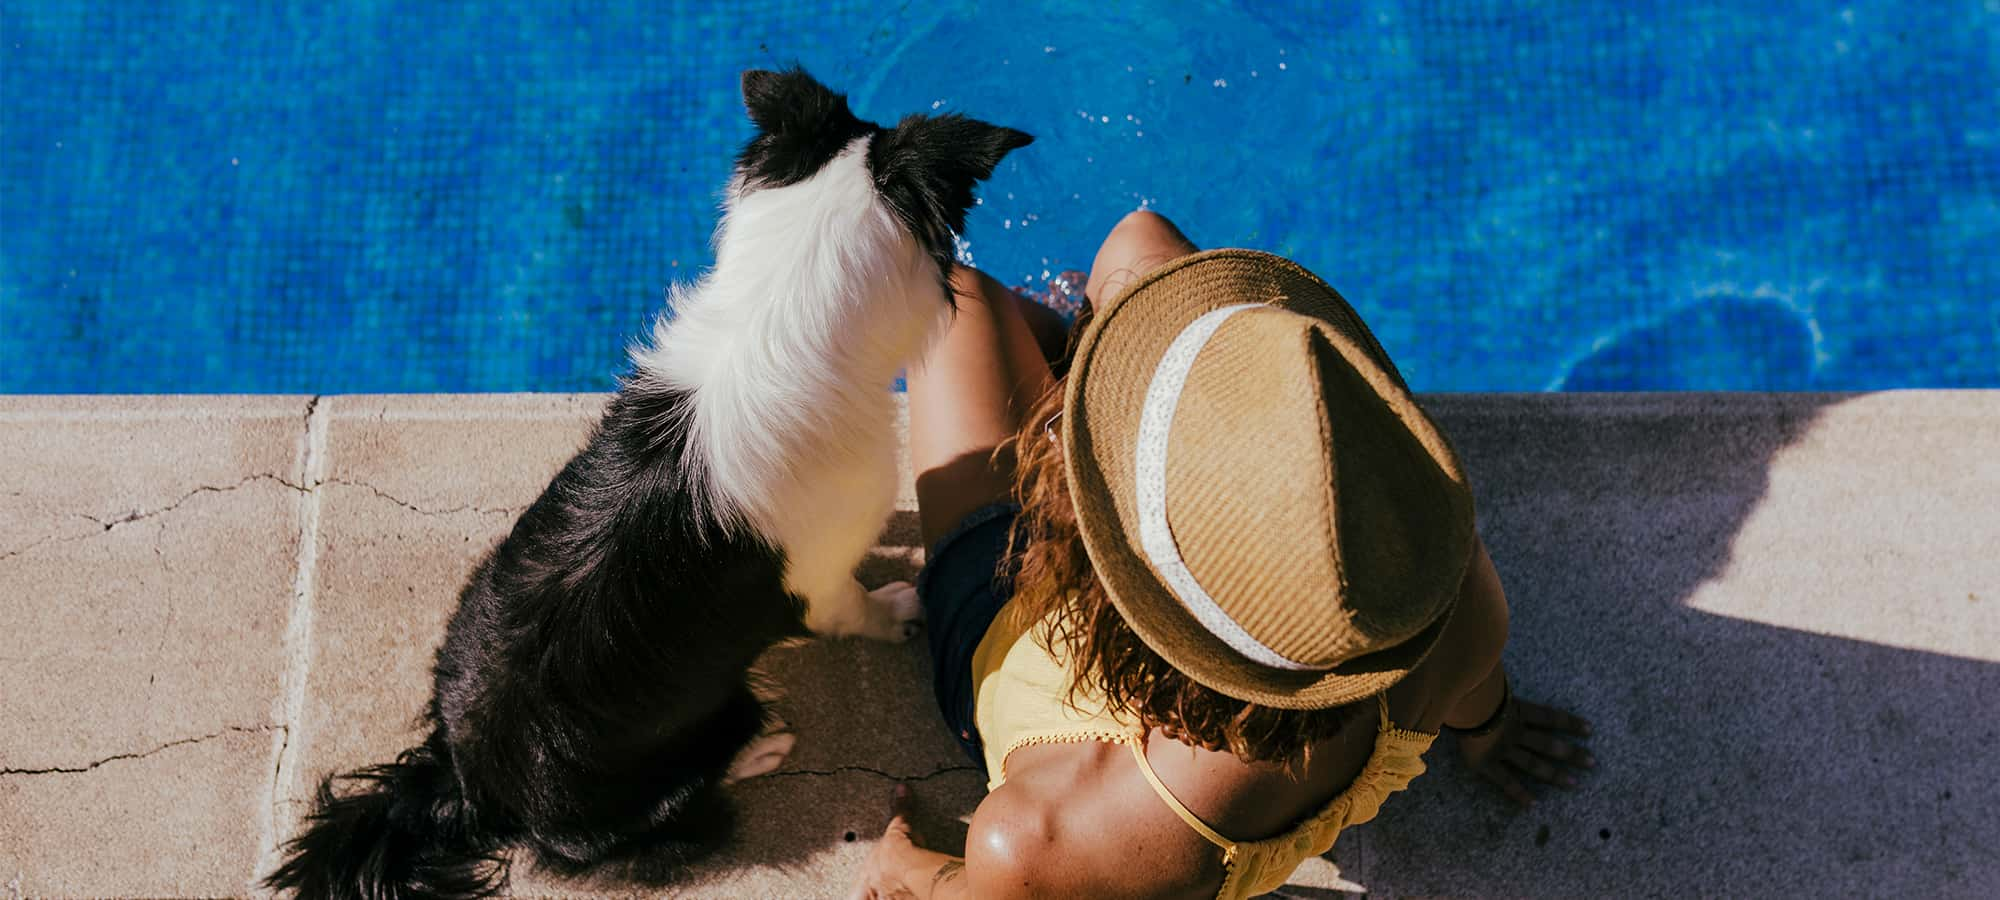 12 Pet Friendly Accommodation Options in Cairns and Surrounds